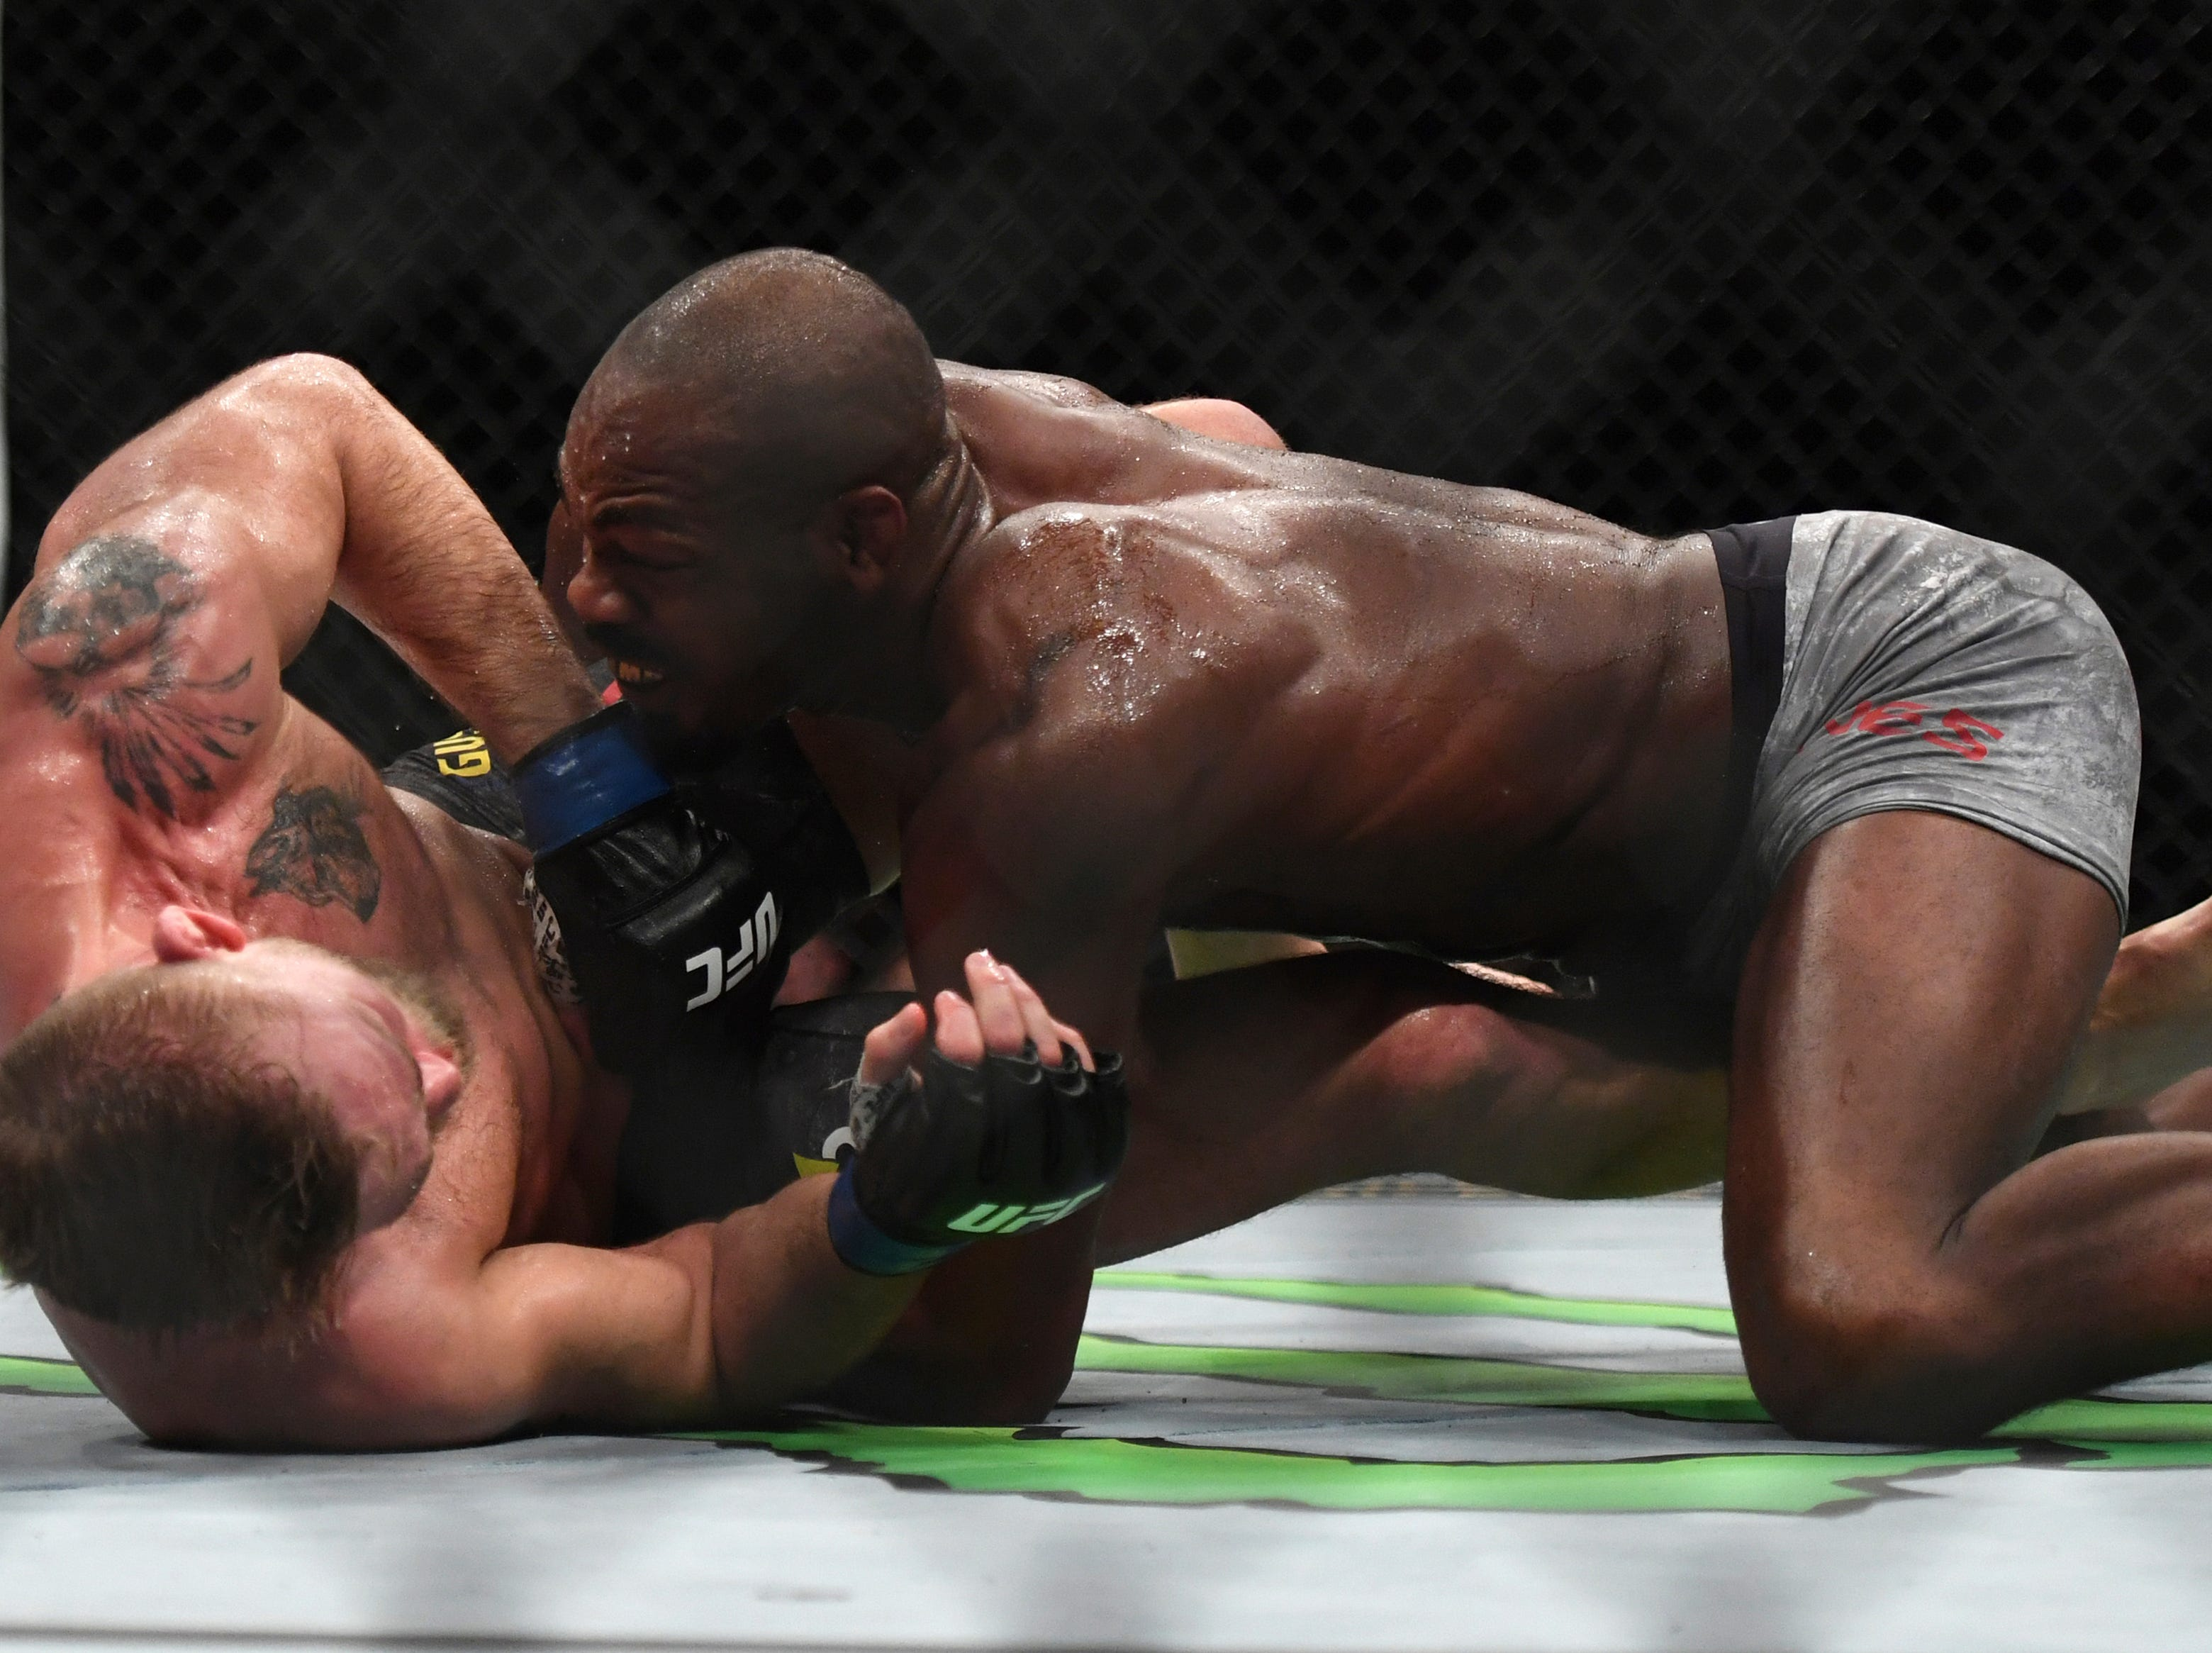 Jon Jones, right, takes Alexander Gustafsson to the ground during the UFC men's light heavyweight mixed martial arts bout at UFC 232, Saturday, Dec. 29, 2018, in Inglewood, Calif. (AP Photo/Kyusung Gong)